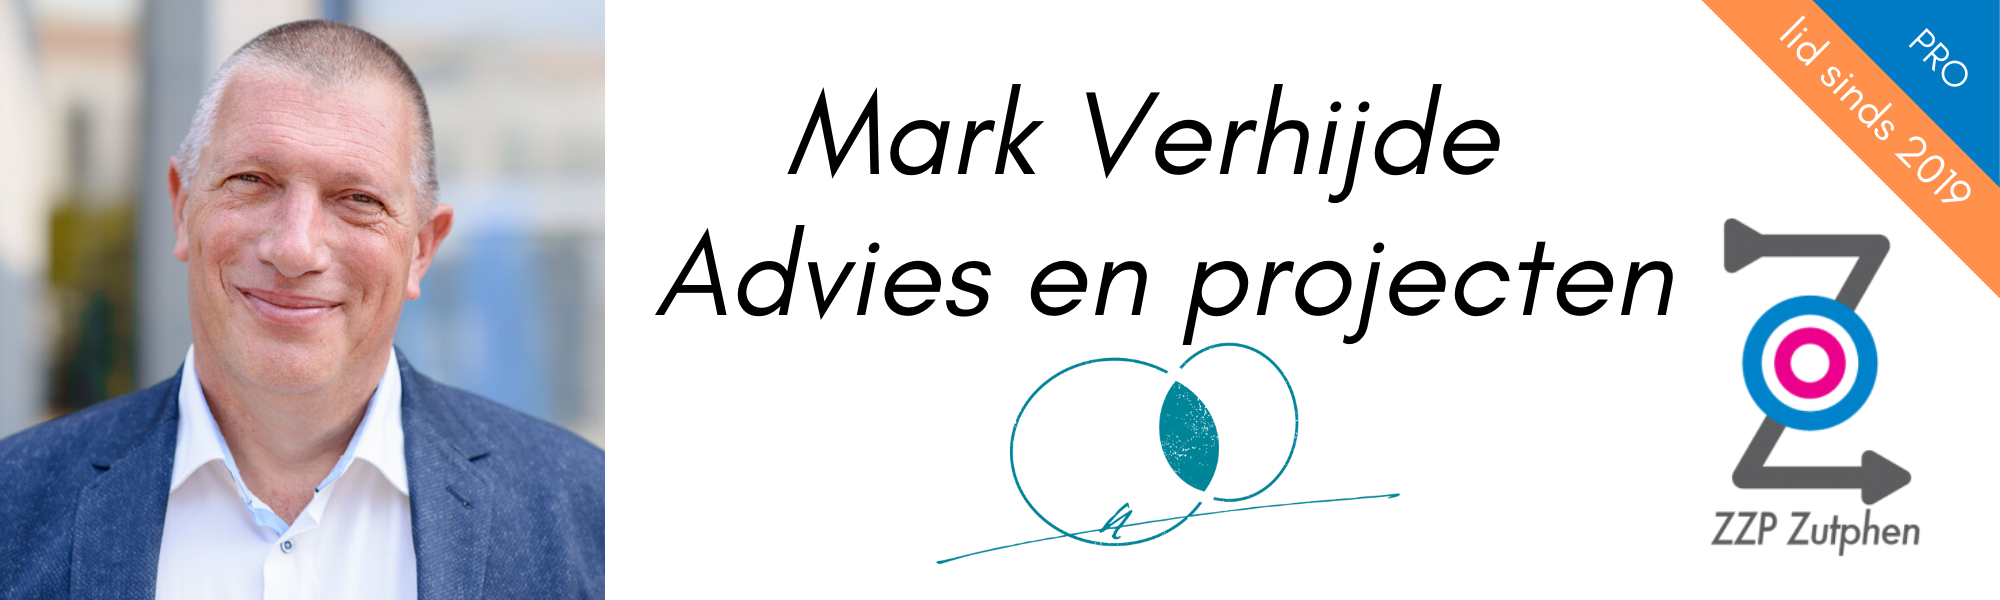 mark-verhijde-advies-projecten-interimmanager-deventer